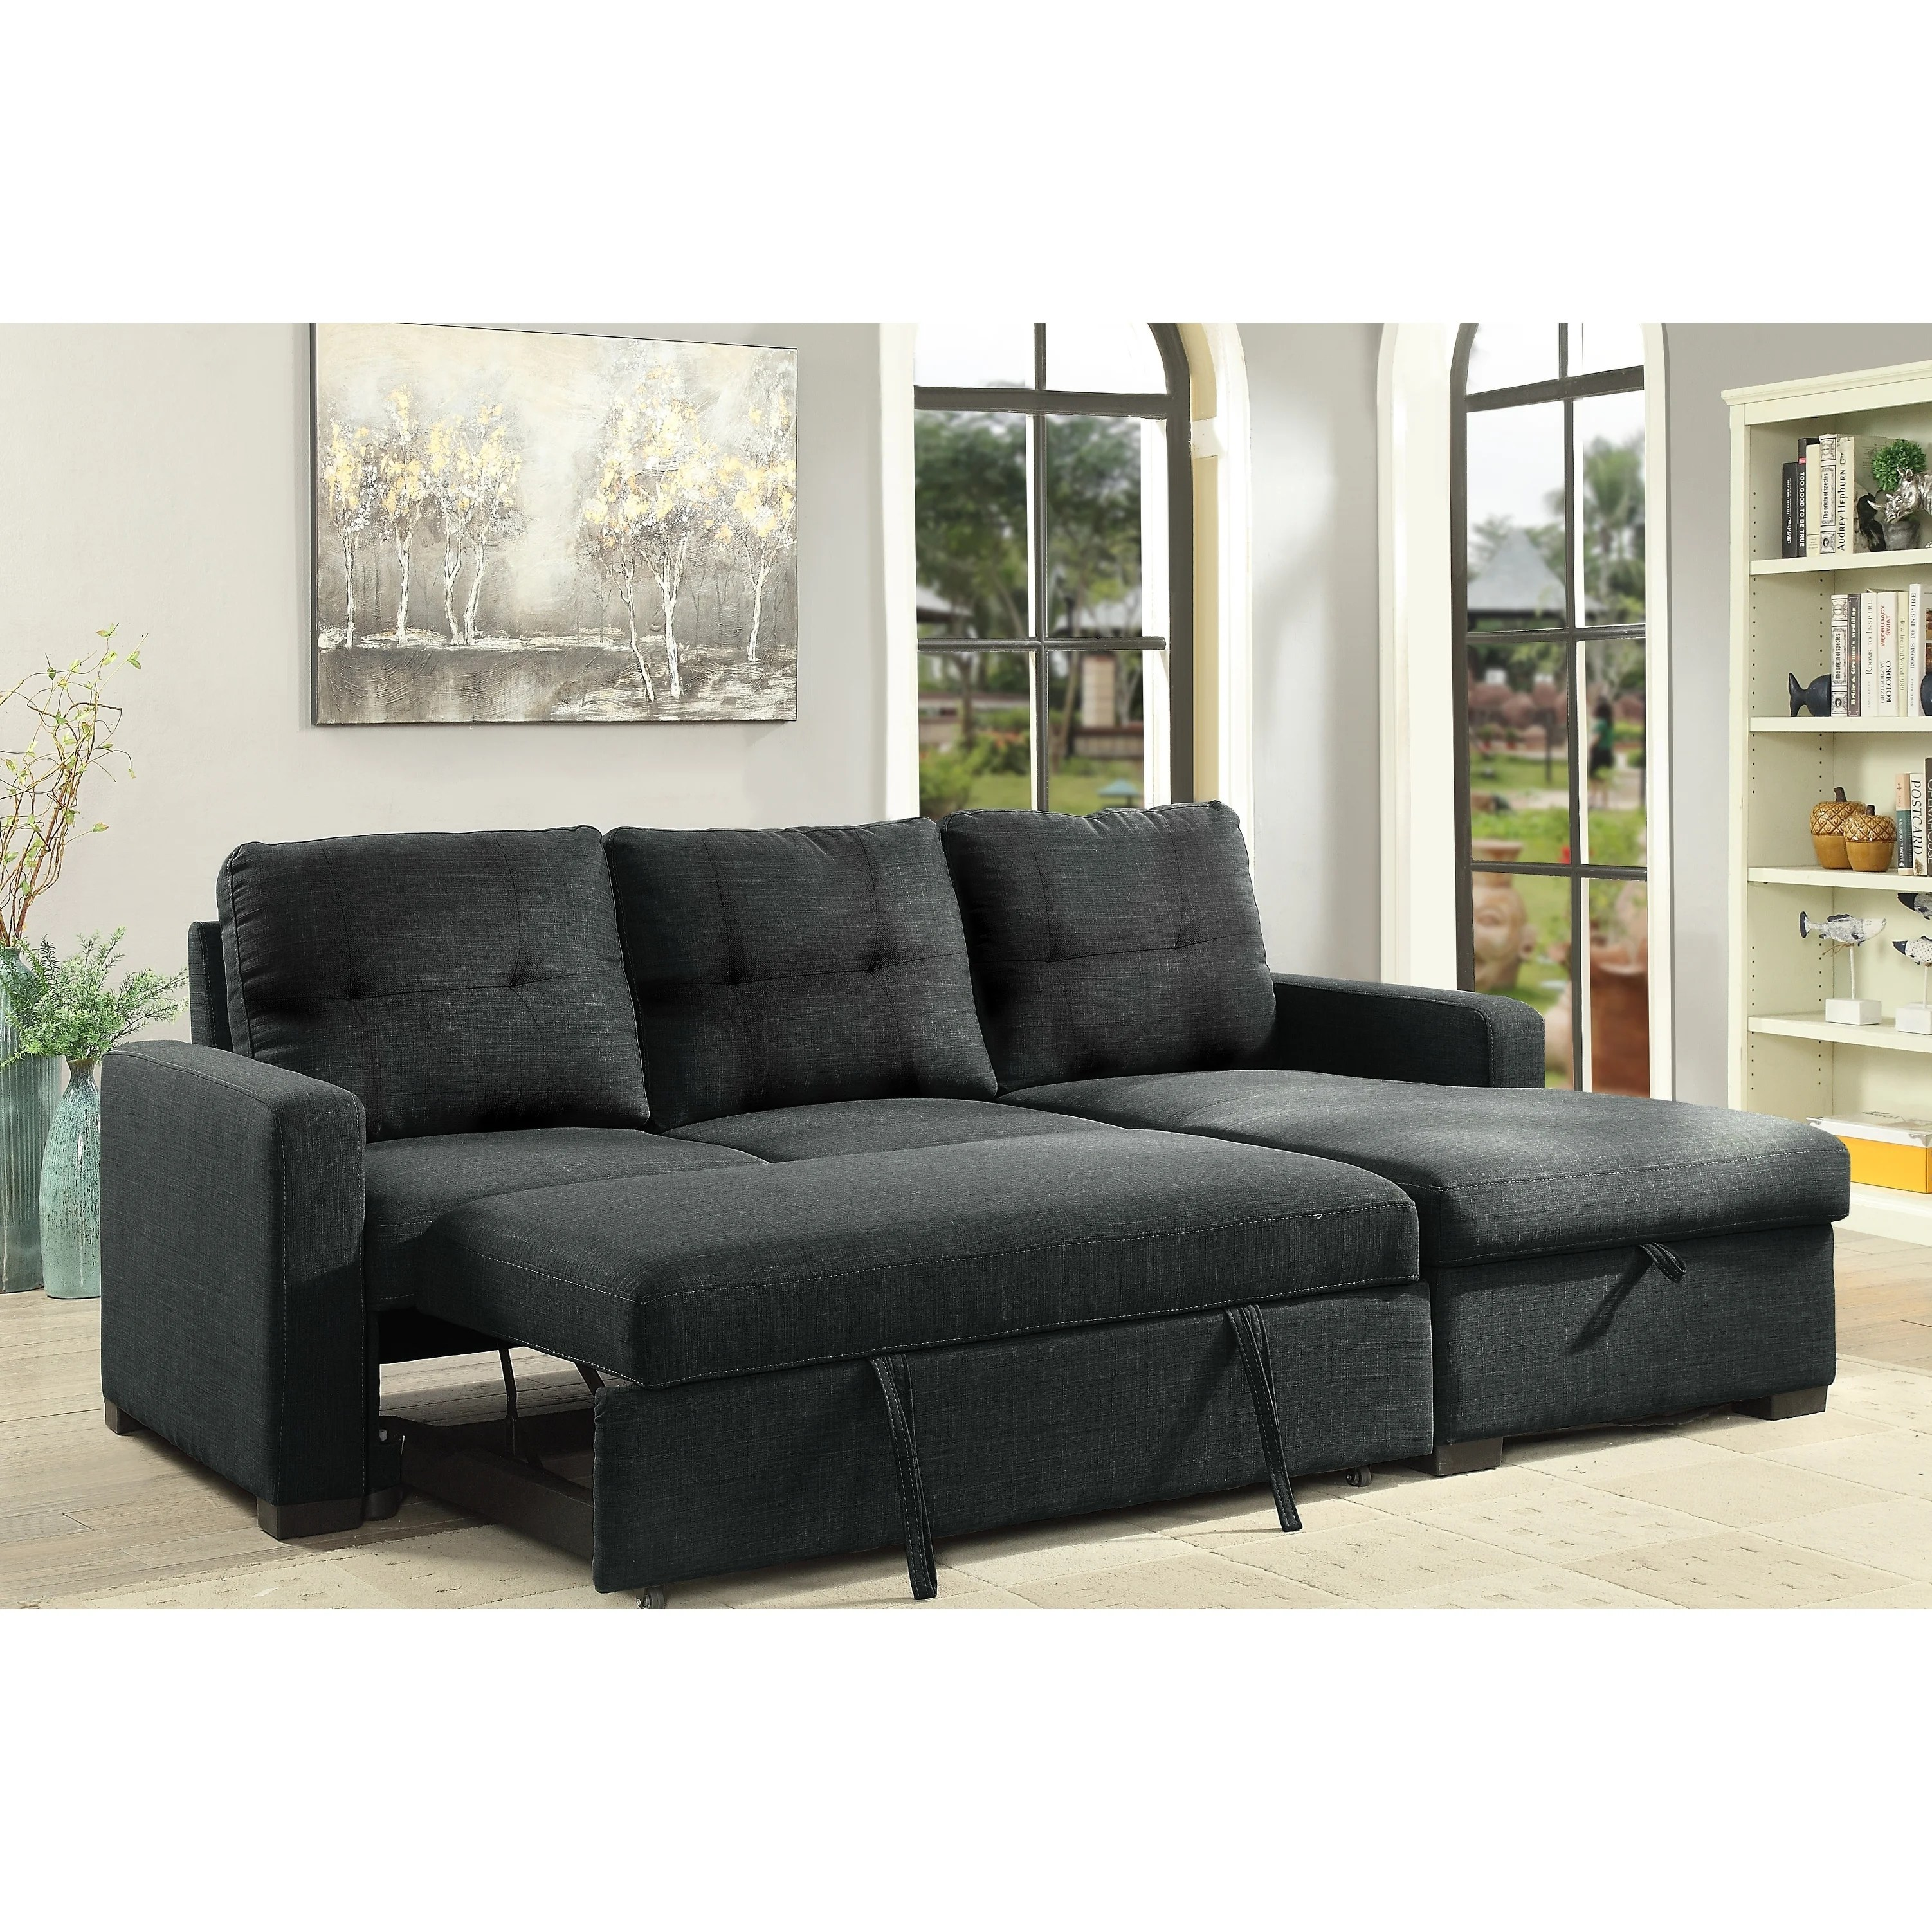 boris sectional with pull out bed storage chaise grey